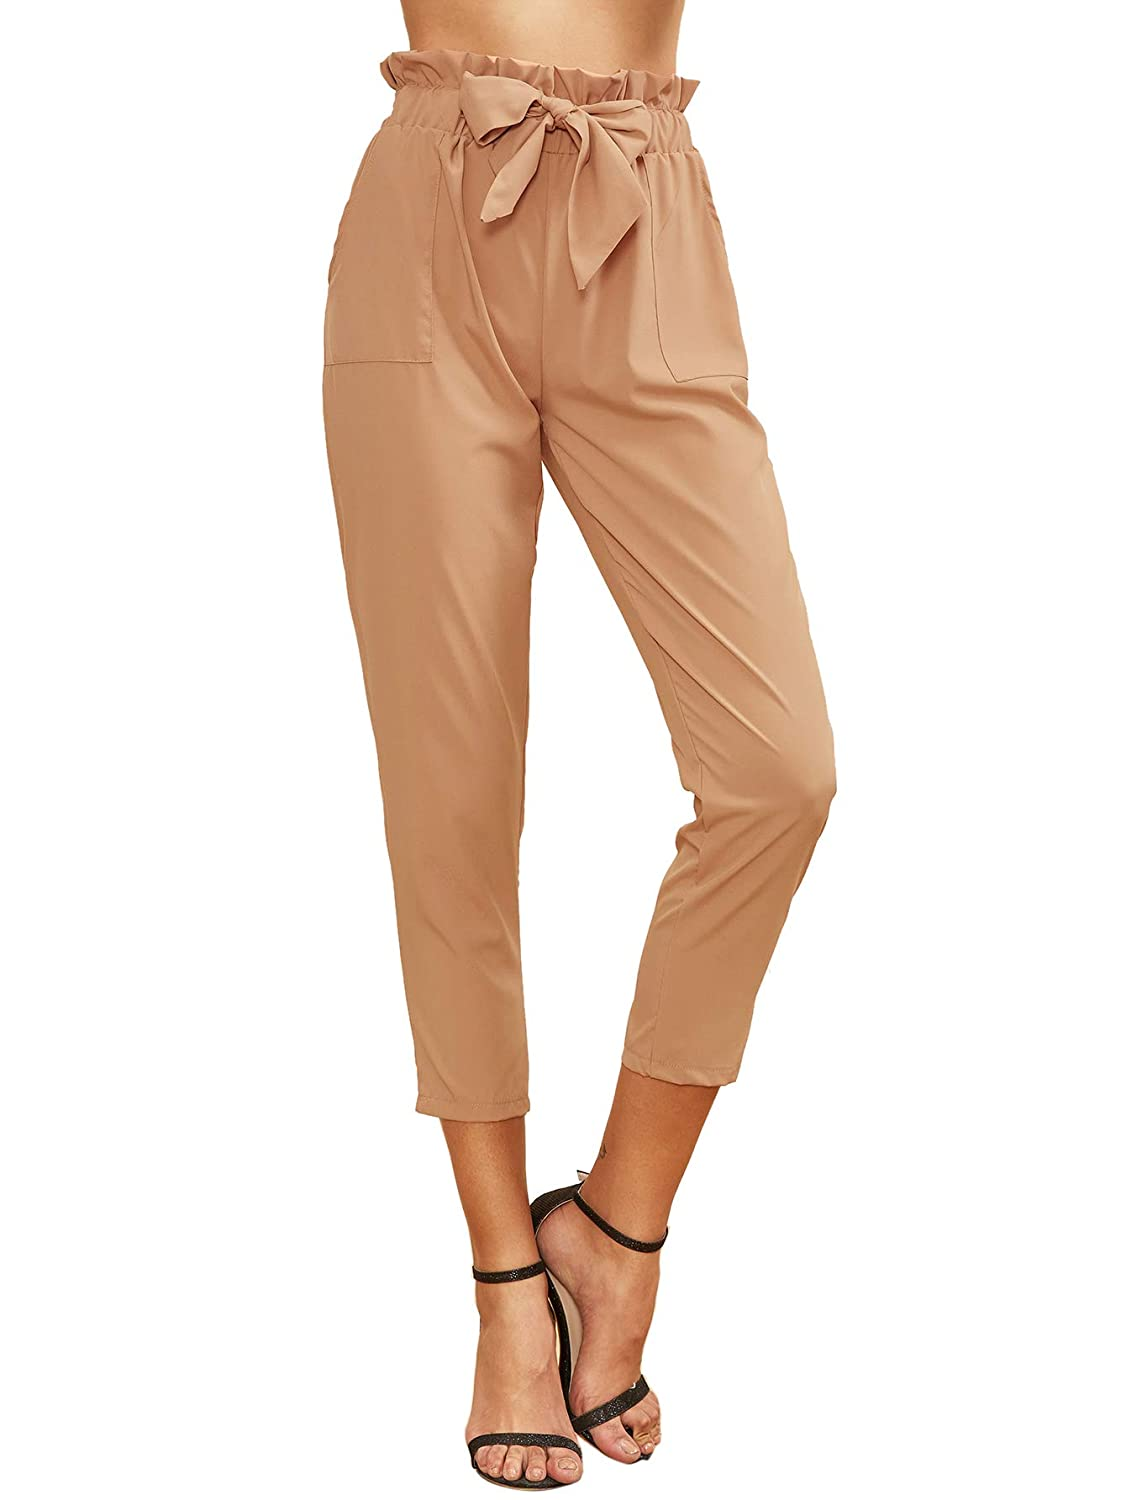 1pink SweatyRocks Women's Elastic Belted High Waist Casual Loose Long Pants with Pocket